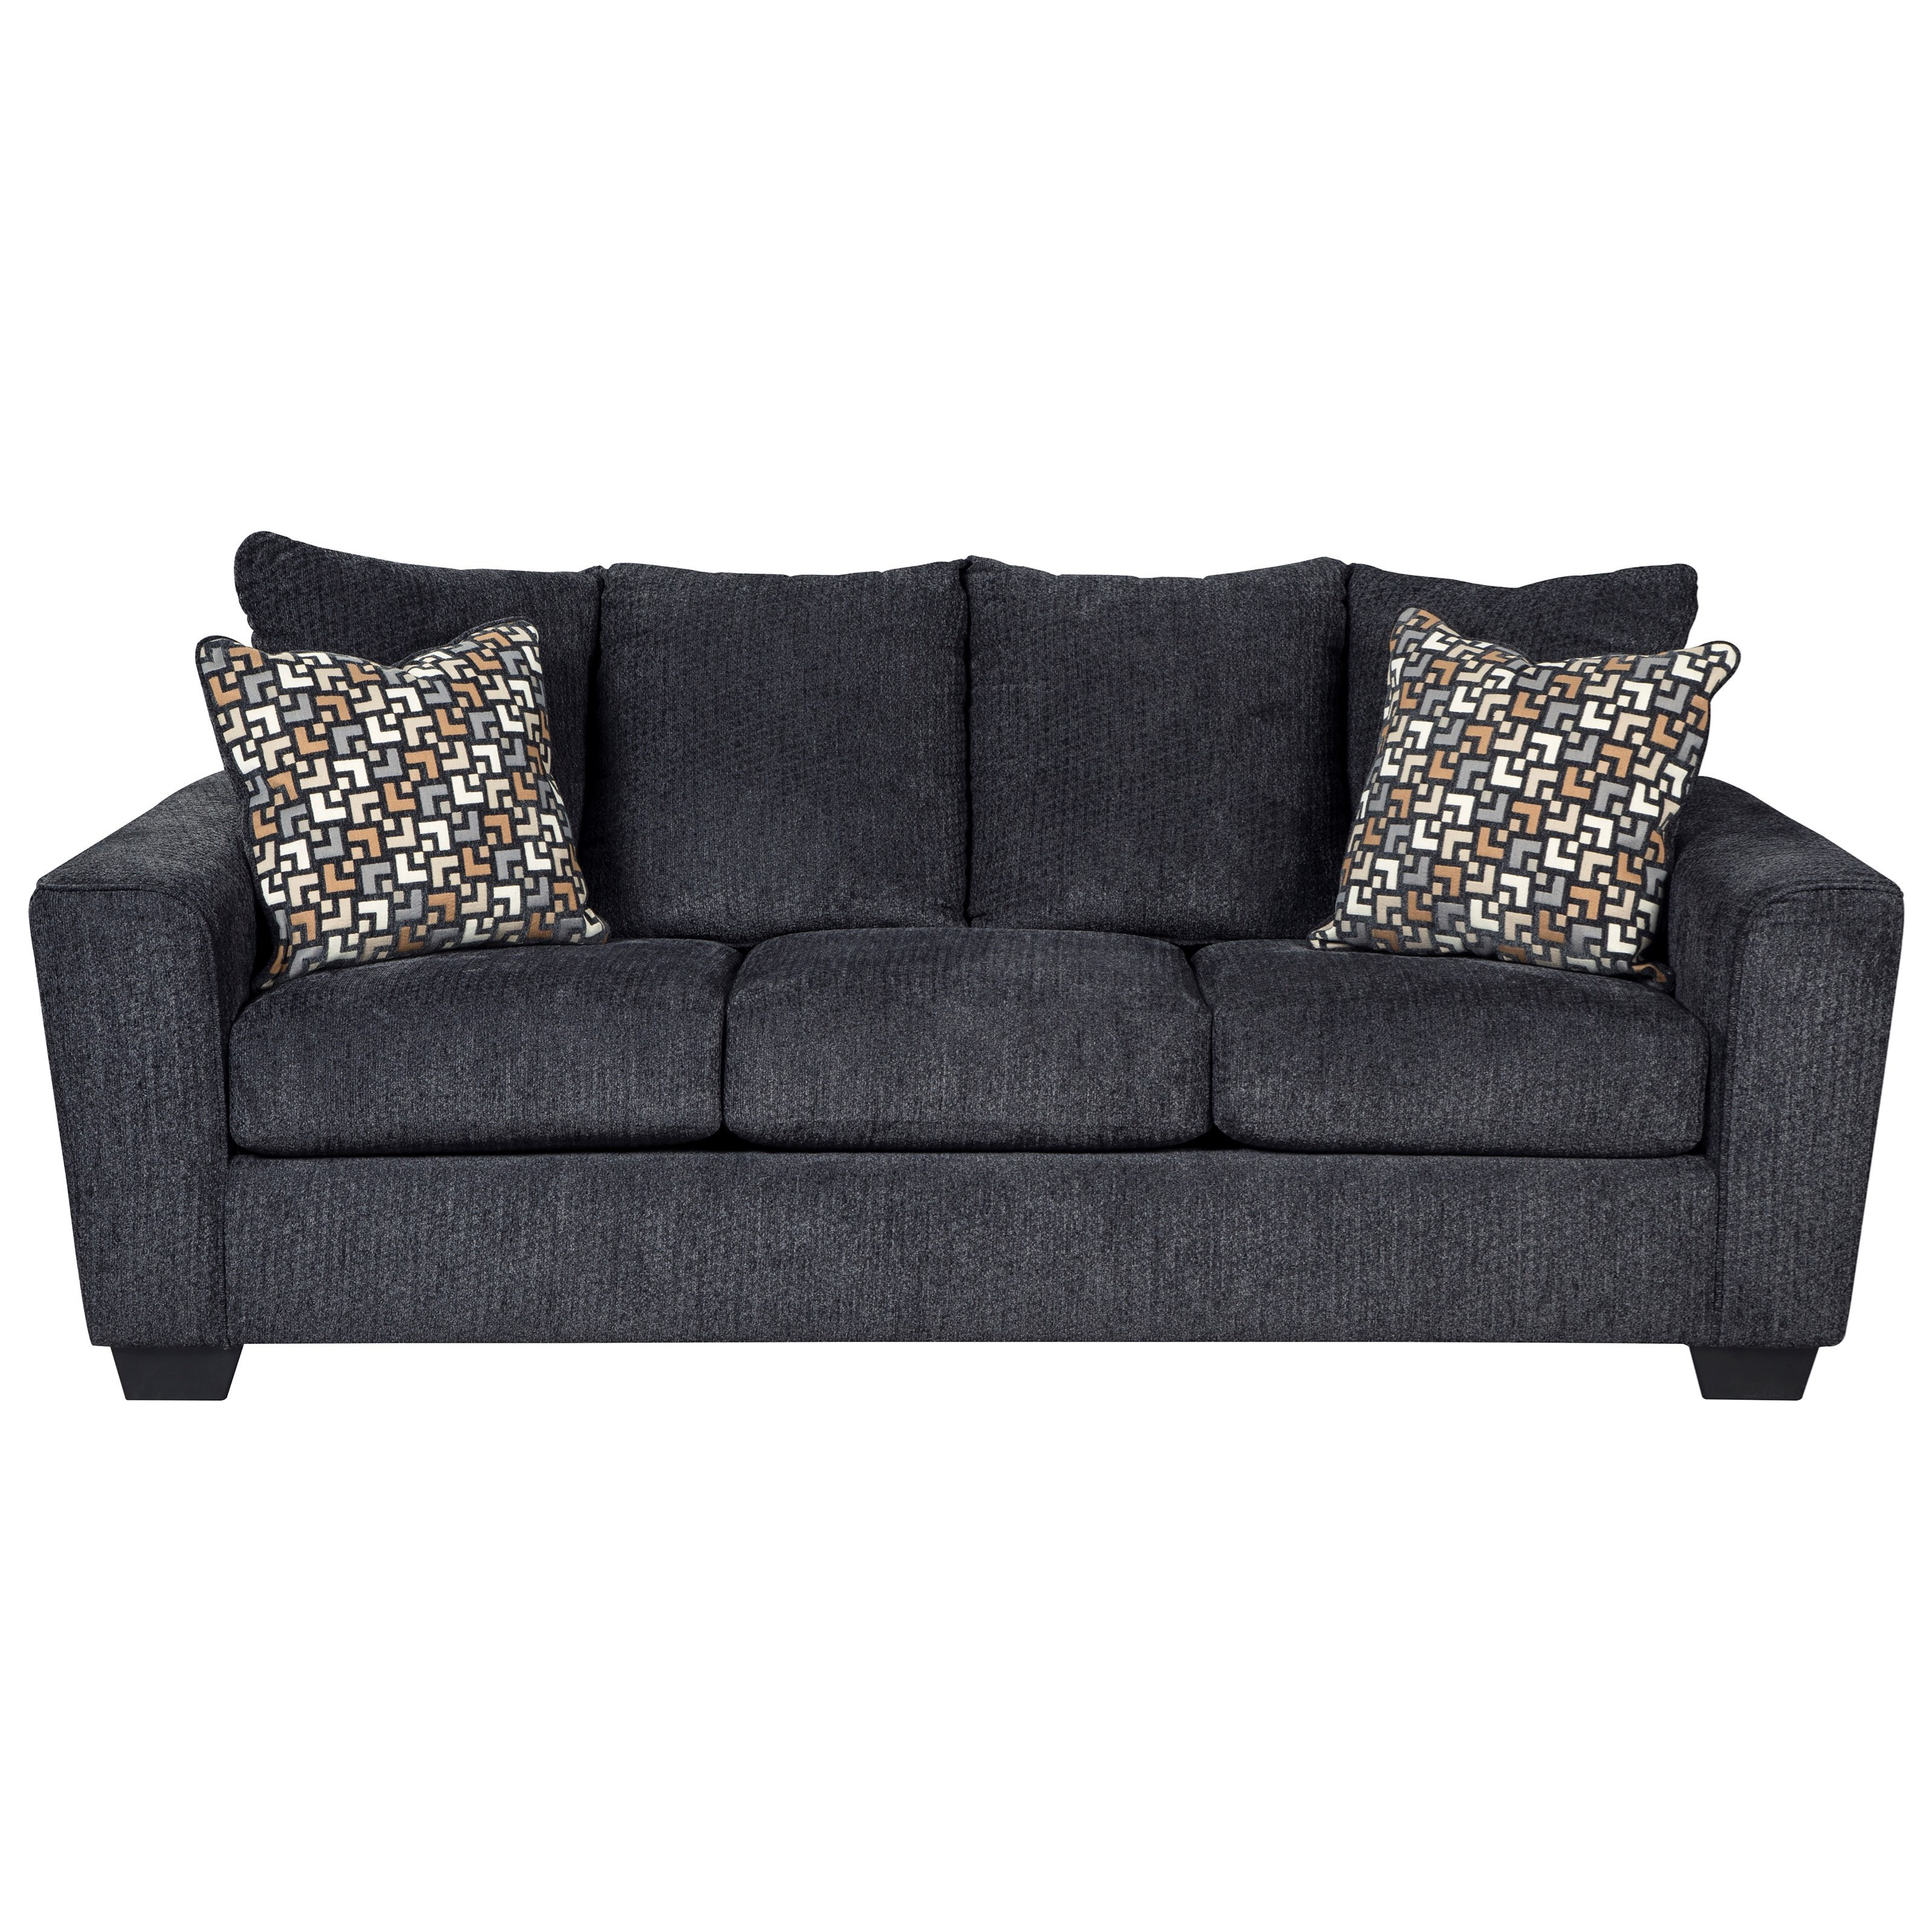 Wixon Sofa by Benchcraft at Walker's Furniture